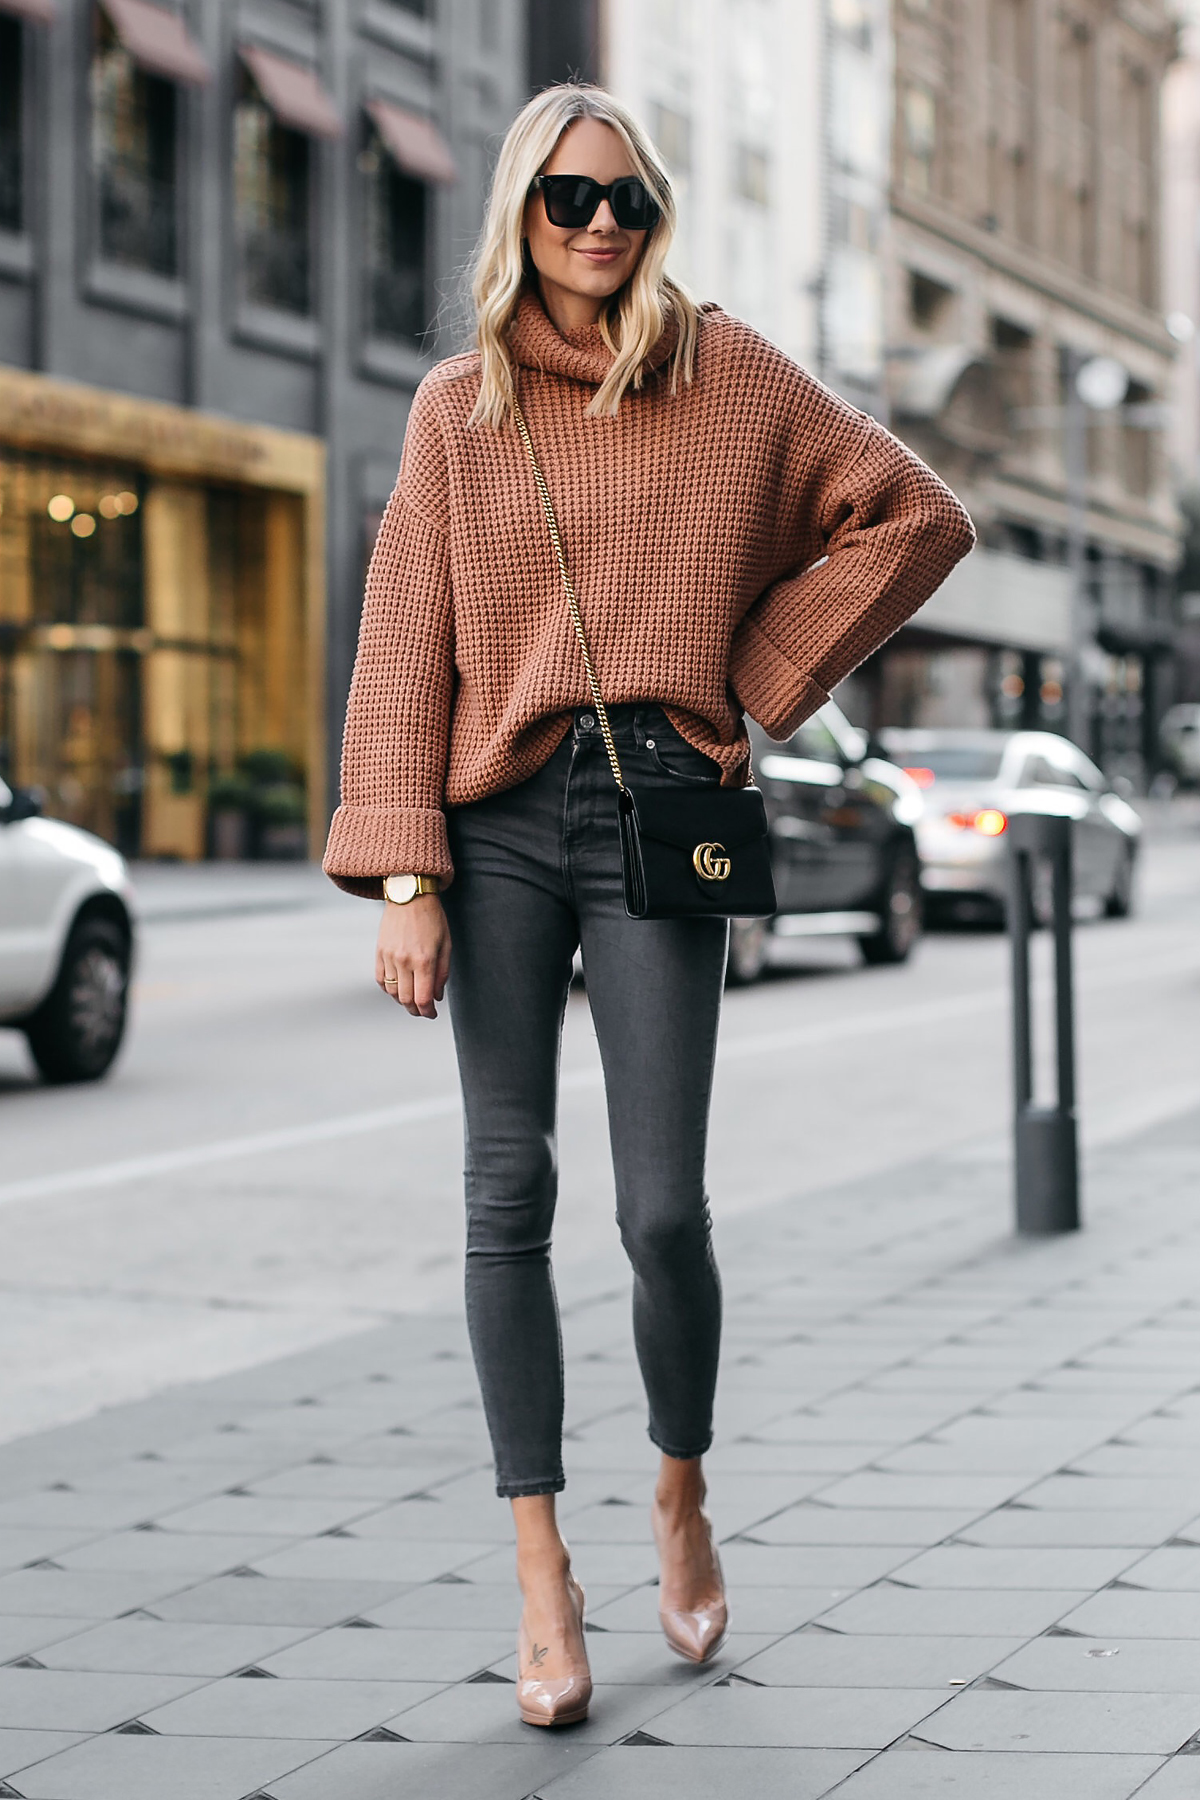 Fashion Jackson Oversized Sweater Free People Park City Pullover Tan Sweater Grey Skinny Jeans Christian Louboutin Nude Pumps Gucci Marmont Handbag